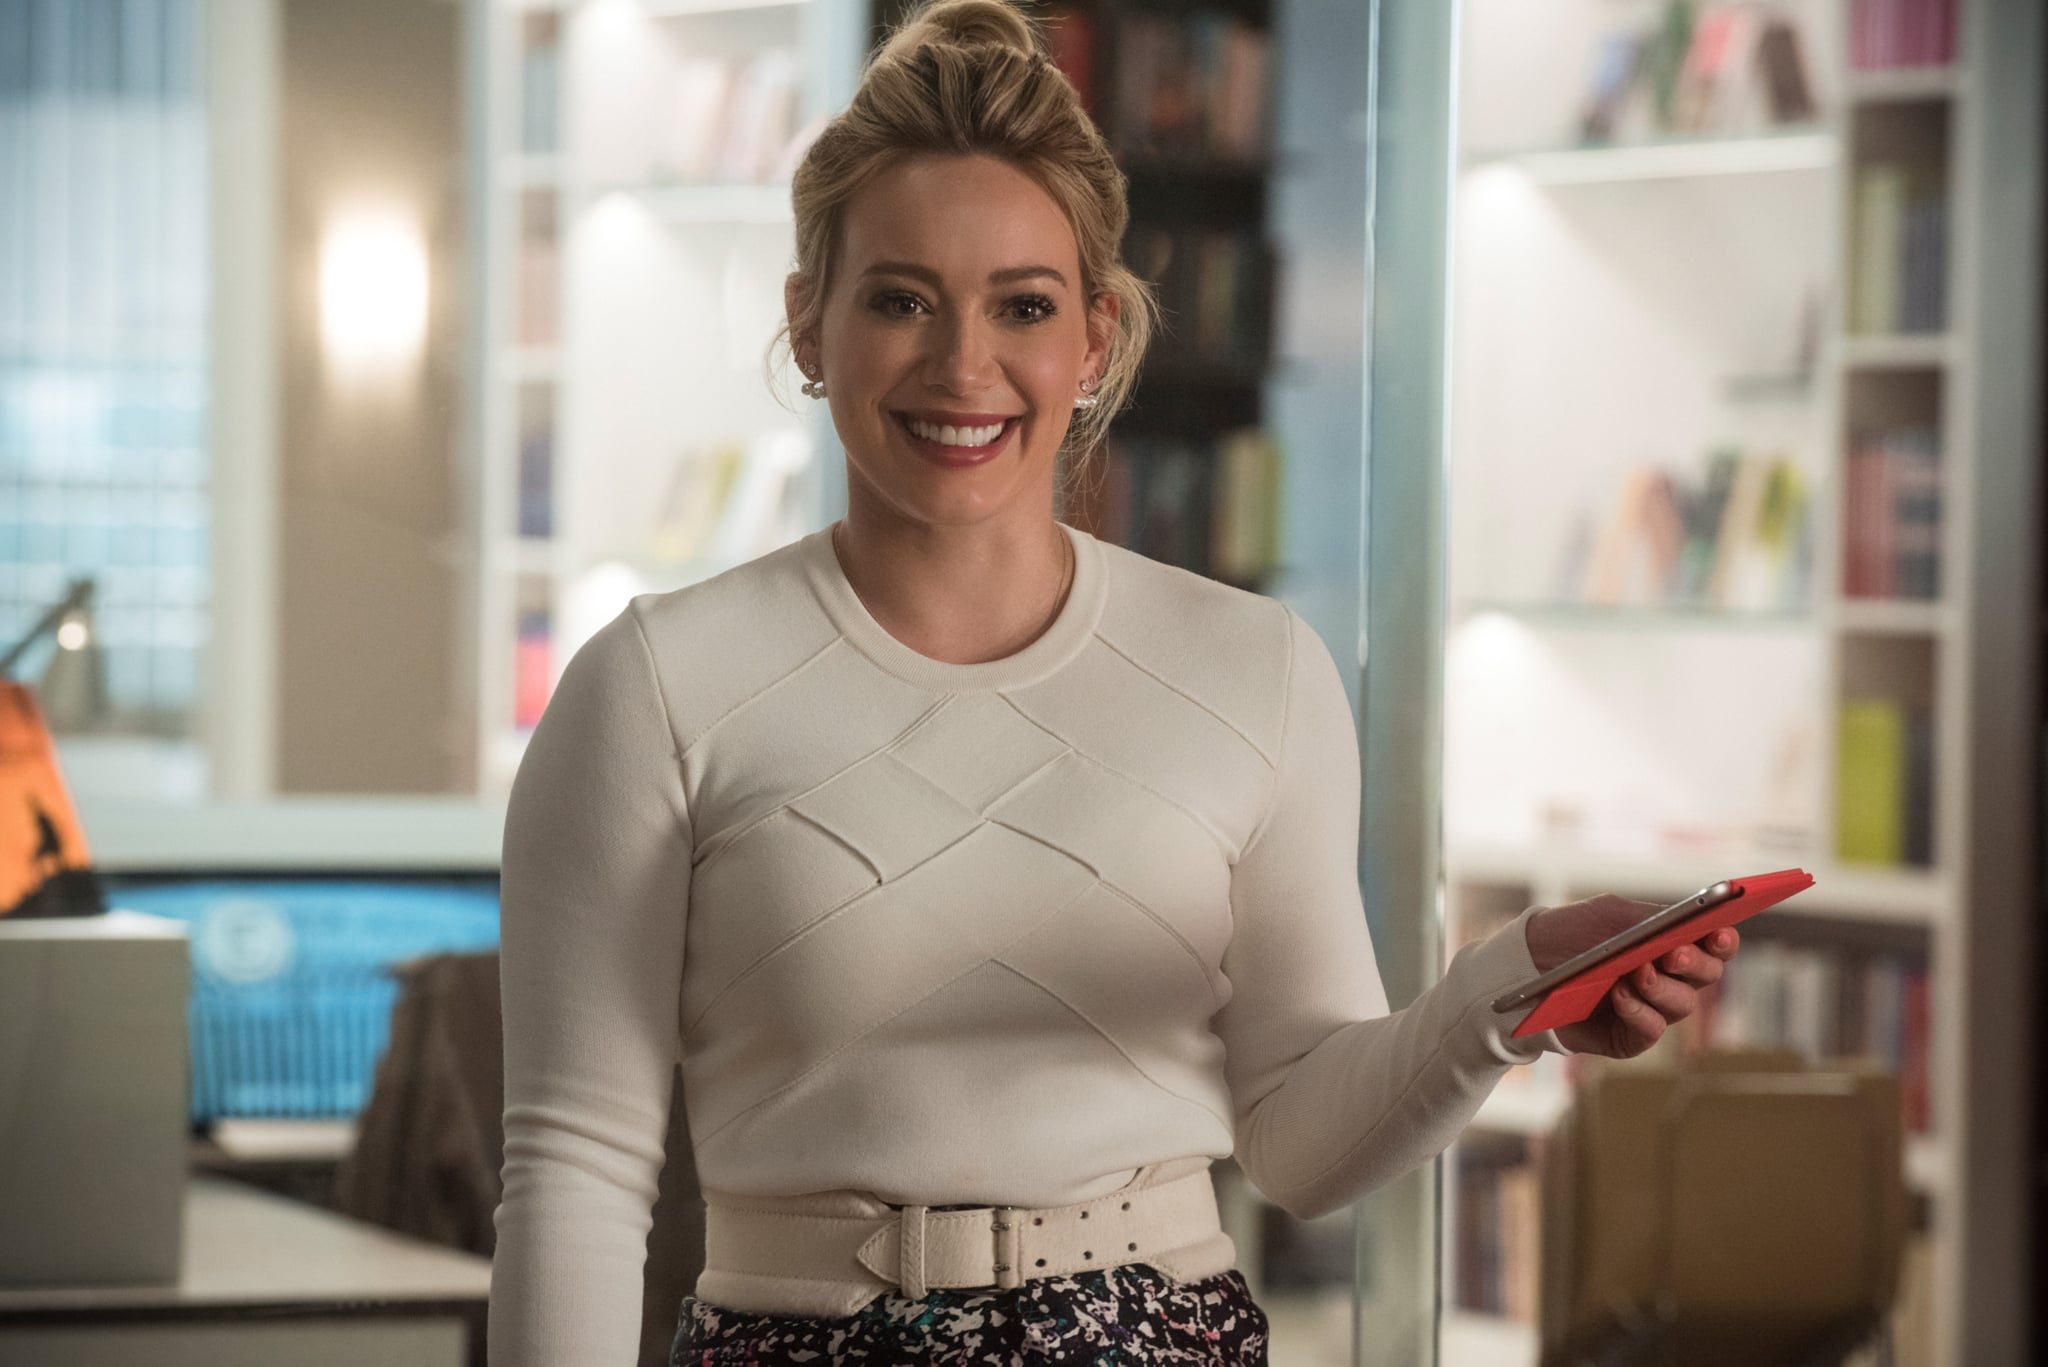 YOUNGER, Hilary Duff, 'Tattoo You', (Season 2, ep. 201, aired Jan. 13, 2016). photo: TV Land/courtesy Everett Collection